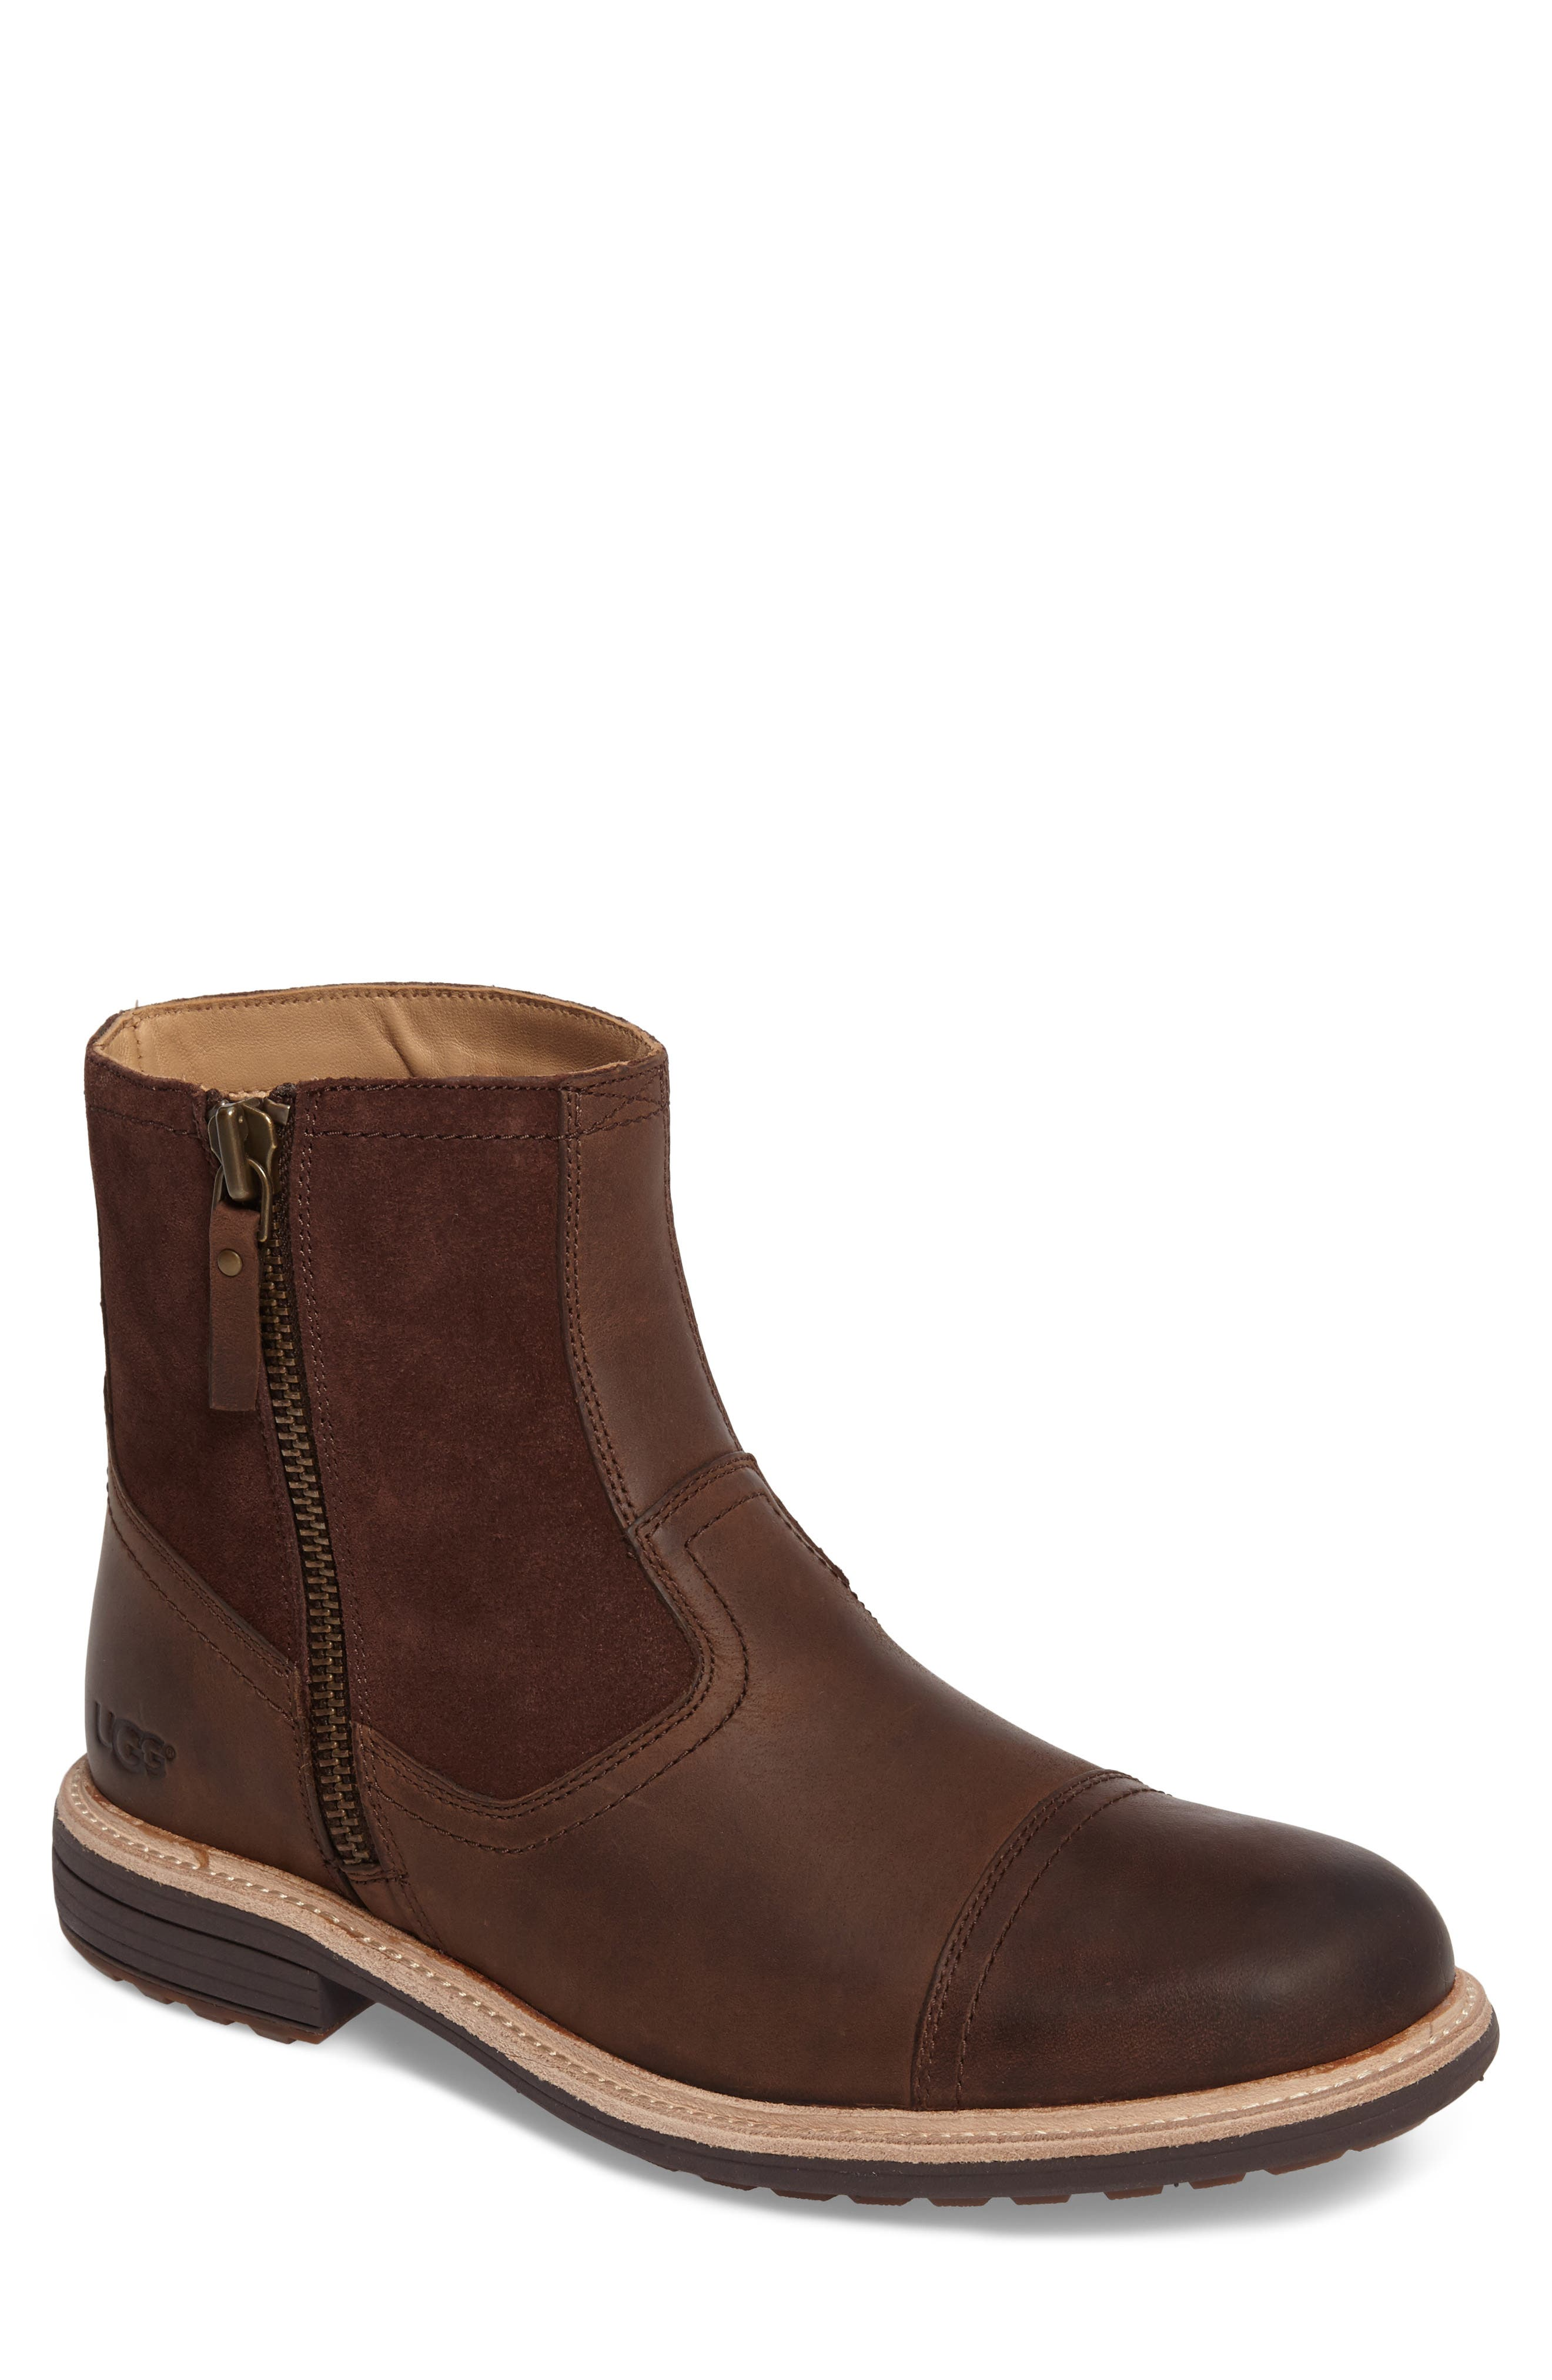 Dalvin Zip Boot with Genuine Shearling,                             Main thumbnail 1, color,                             Grizzly